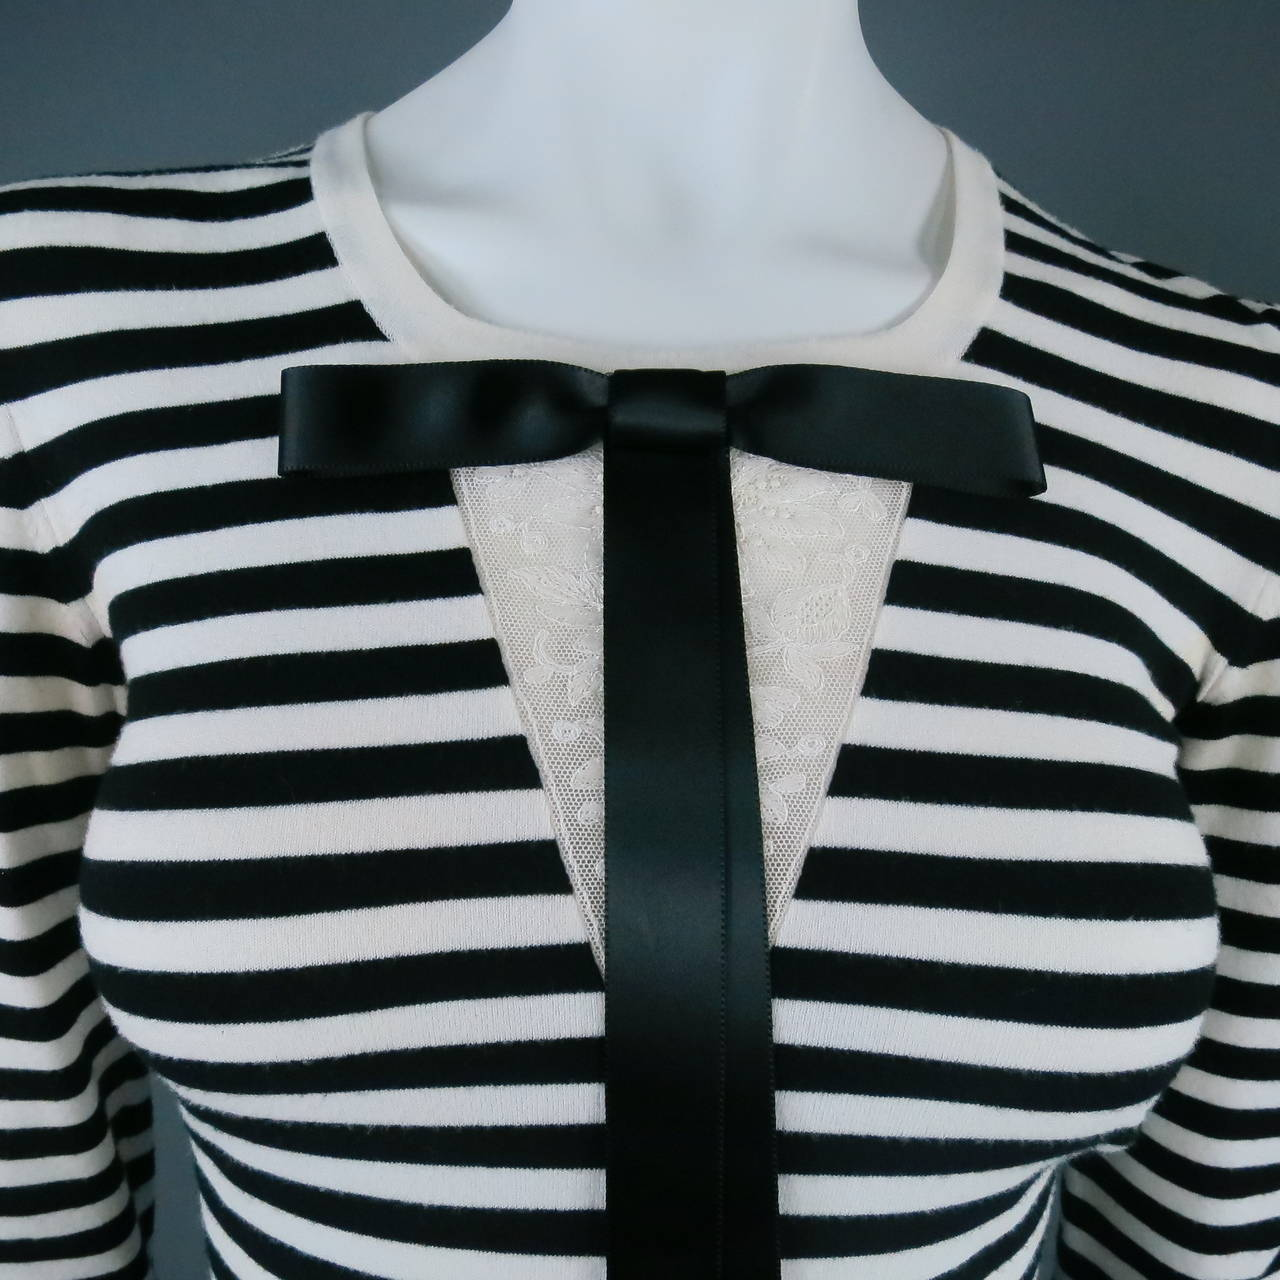 Gorgeous black and white striped sweater by CHANEL. A nautical style with a scoop neck, featuring a white lace applique panel under the neckline with a detachable black ribbon bow. Made in France.